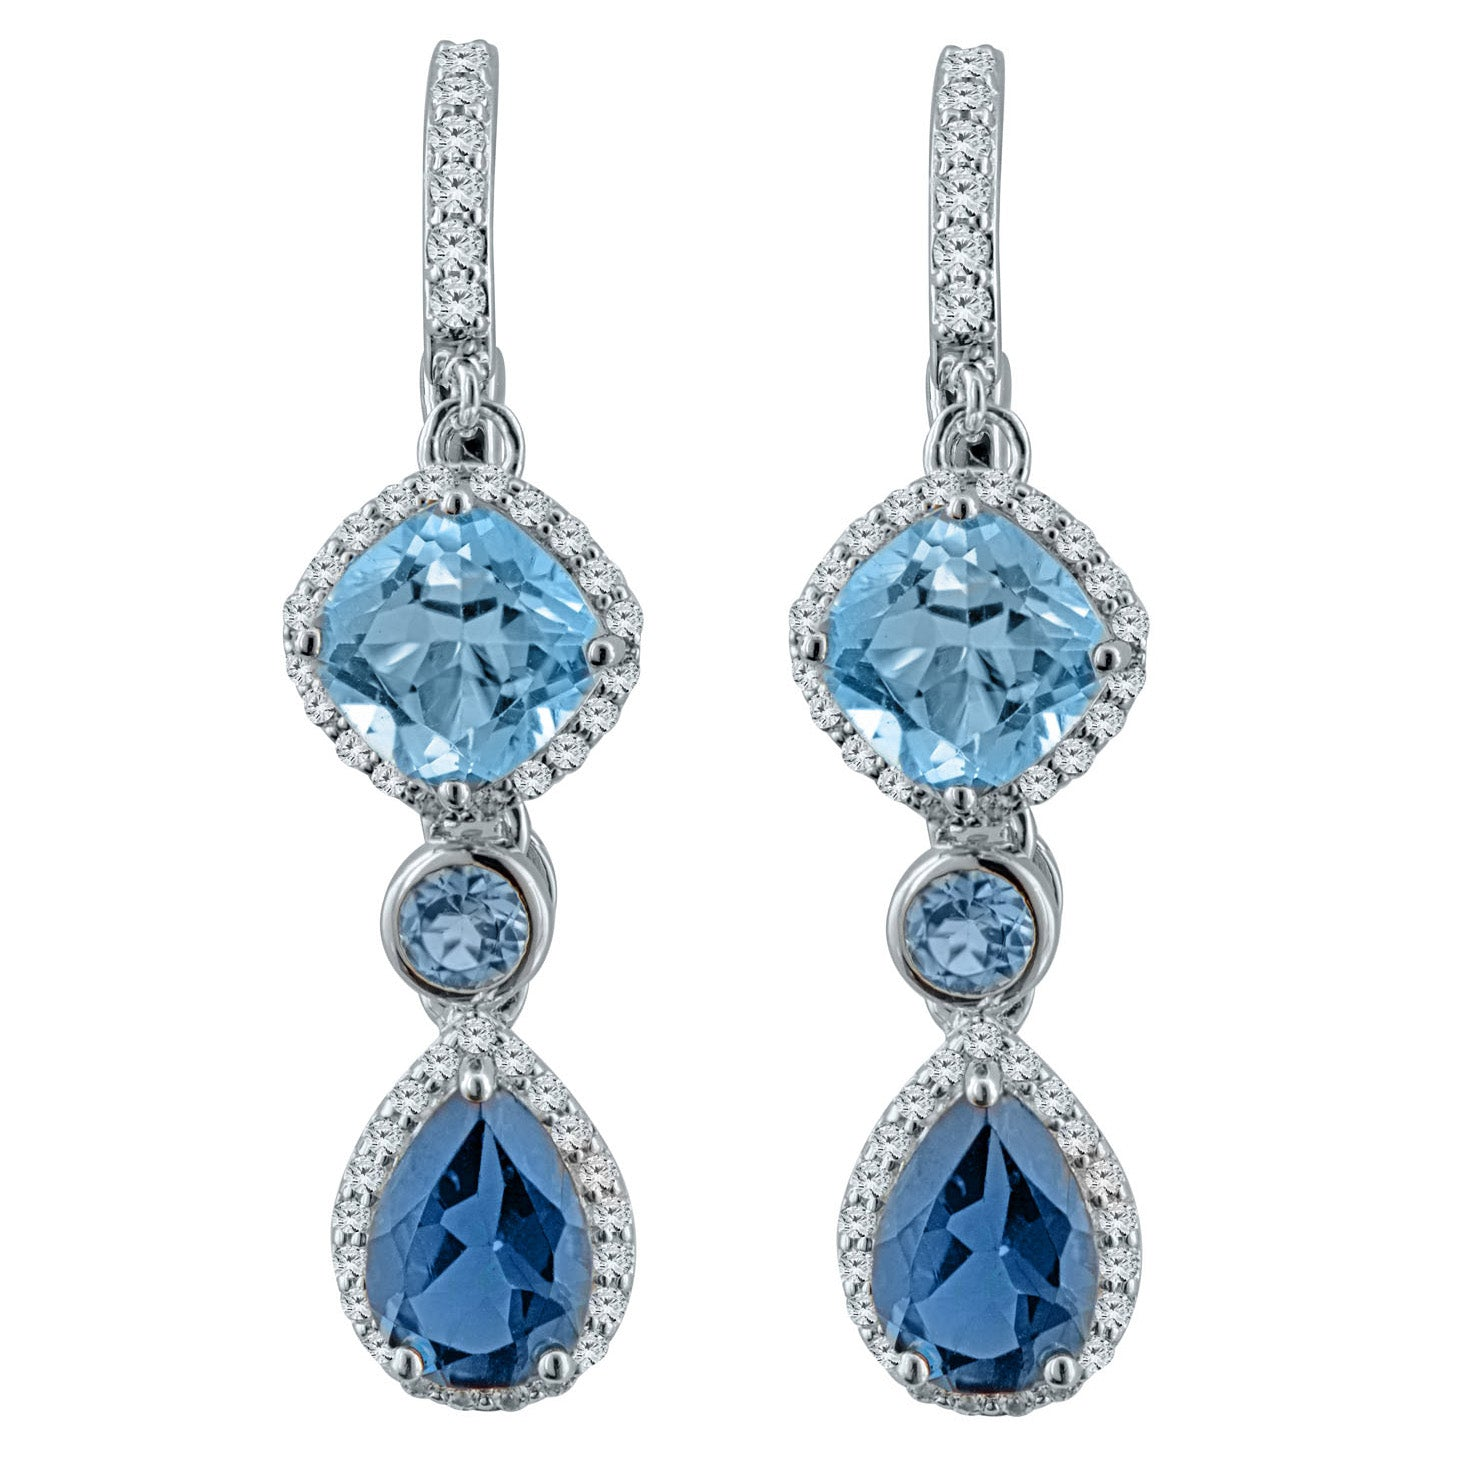 Shades of Blue T Sky Blue-Topaz, Swiss Blue-Topaz, London Blue-Topaz, White Topaz Silver Drop Earrings